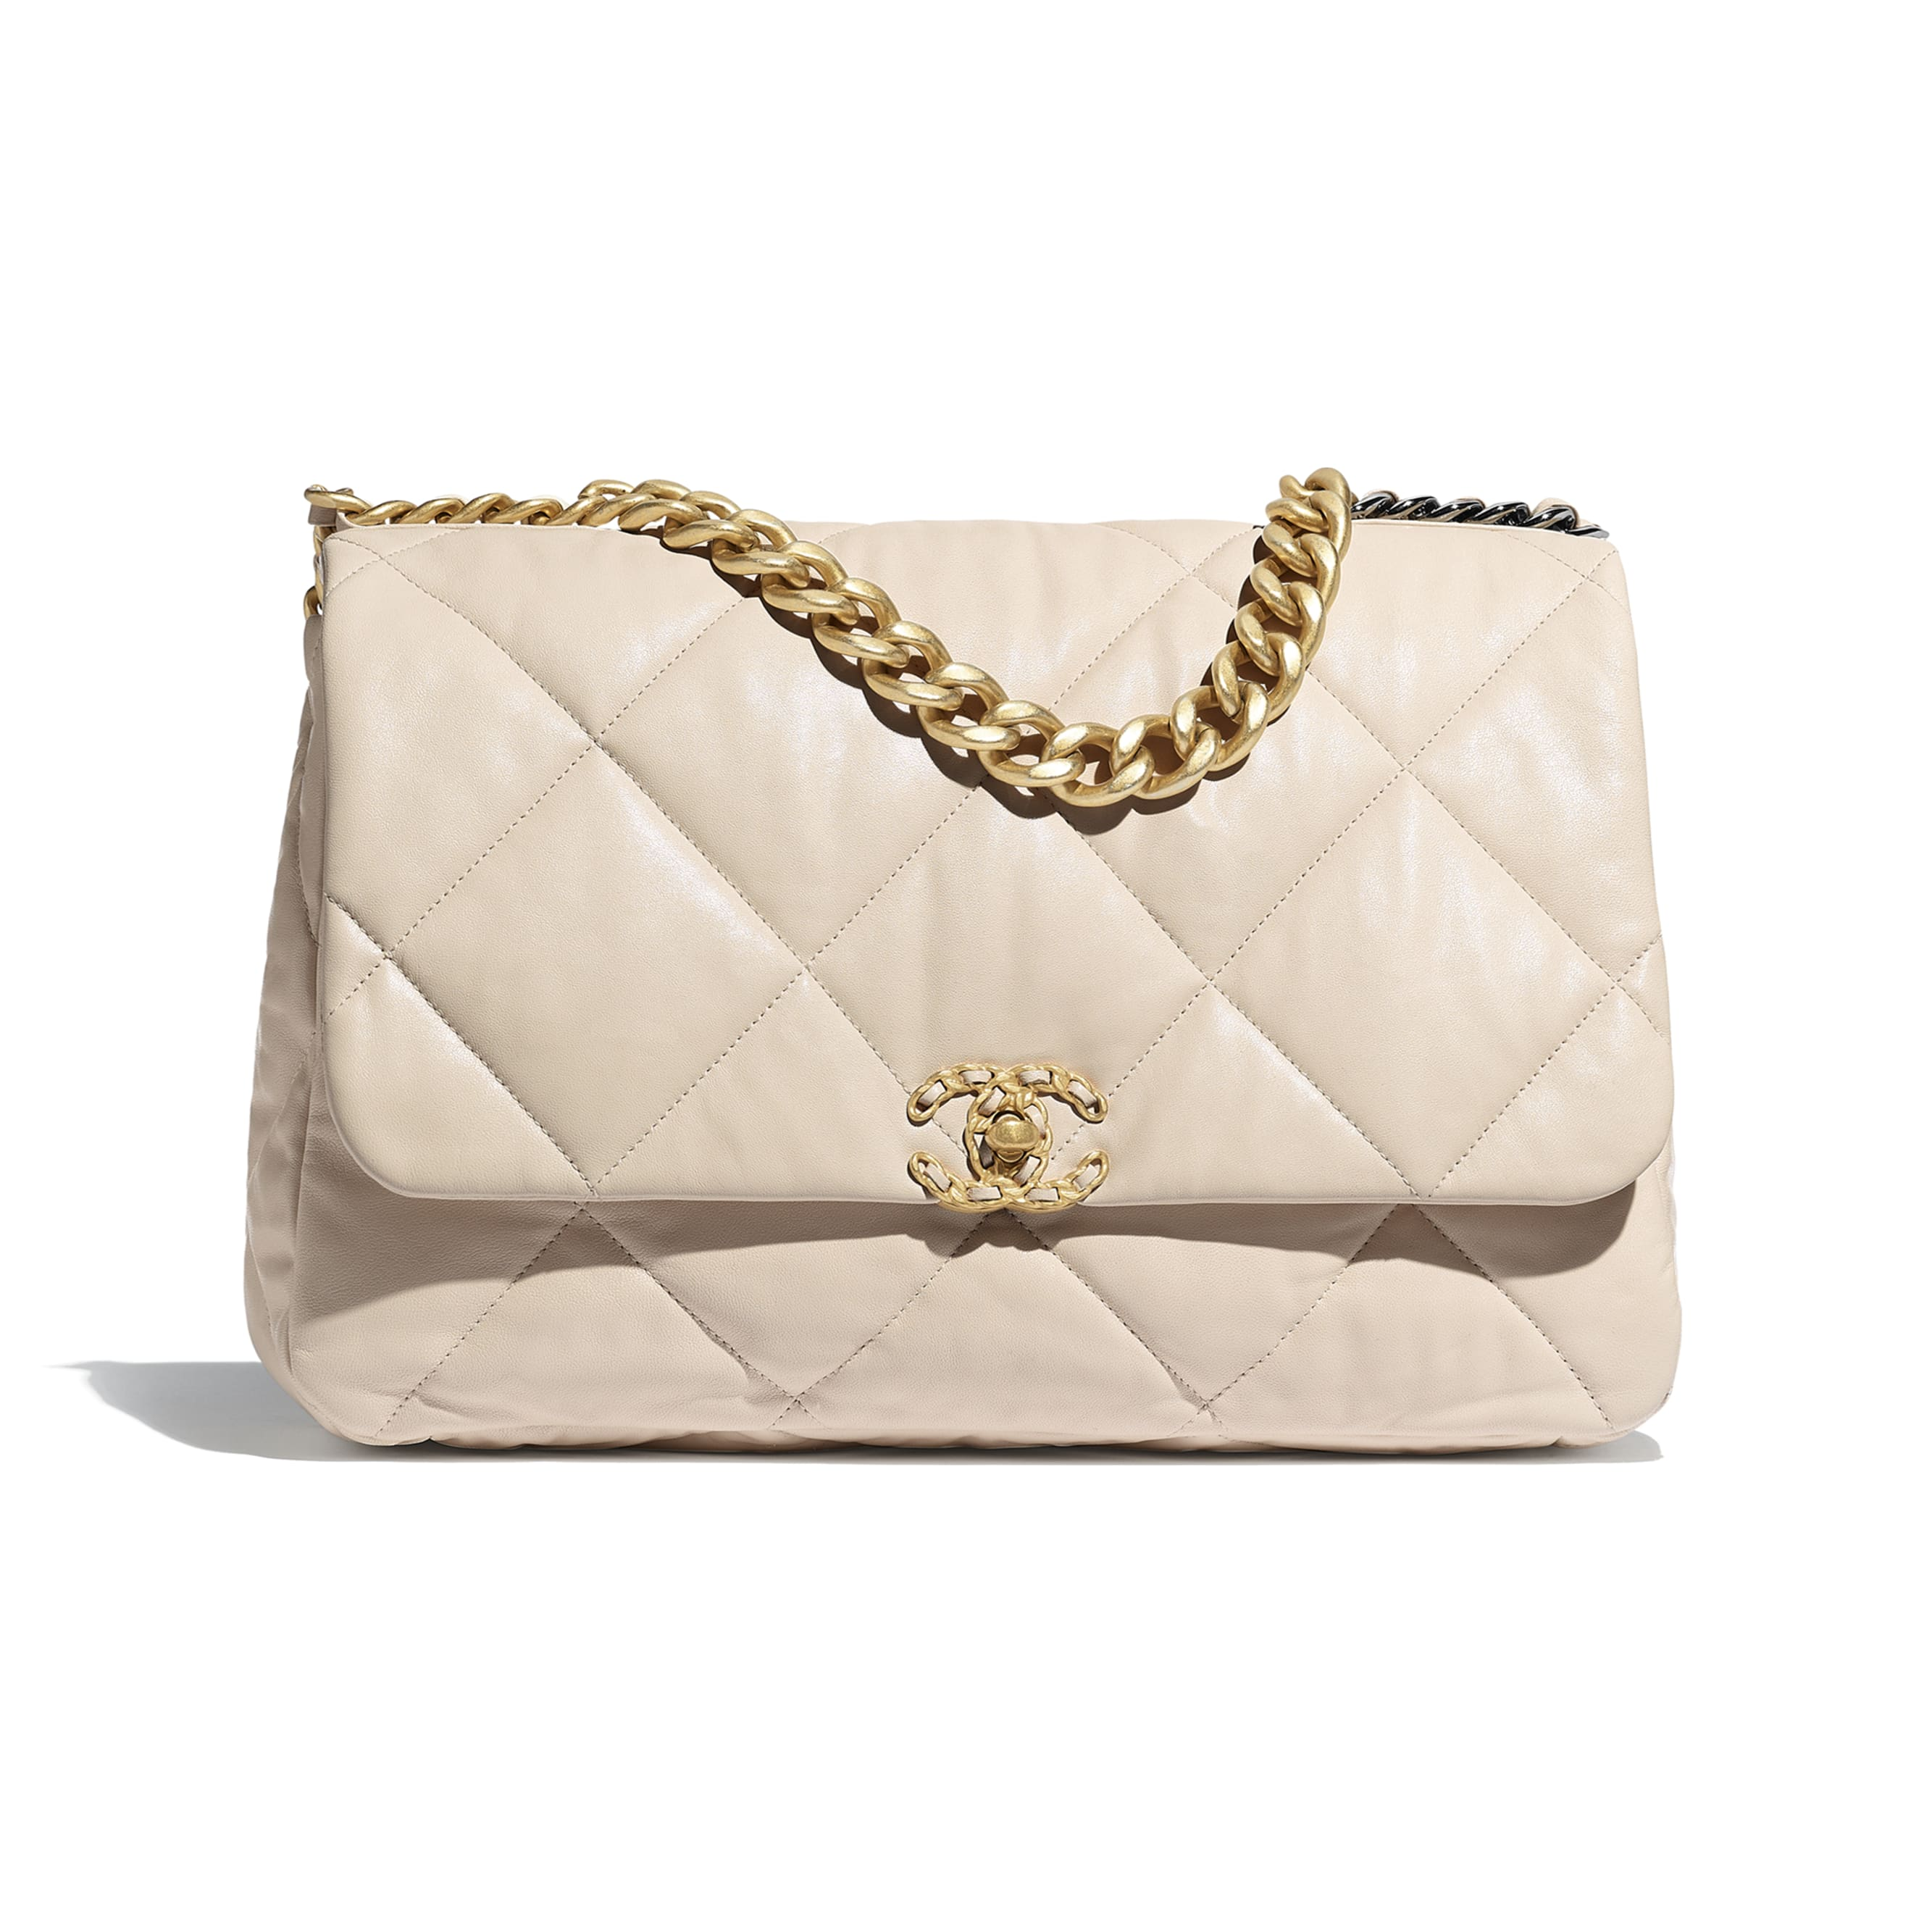 CHANEL 19 Maxi Flap Bag - Light Beige - Lambskin, Gold-Tone, Silver-Tone & Ruthenium-Finish Metal - Default view - see standard sized version